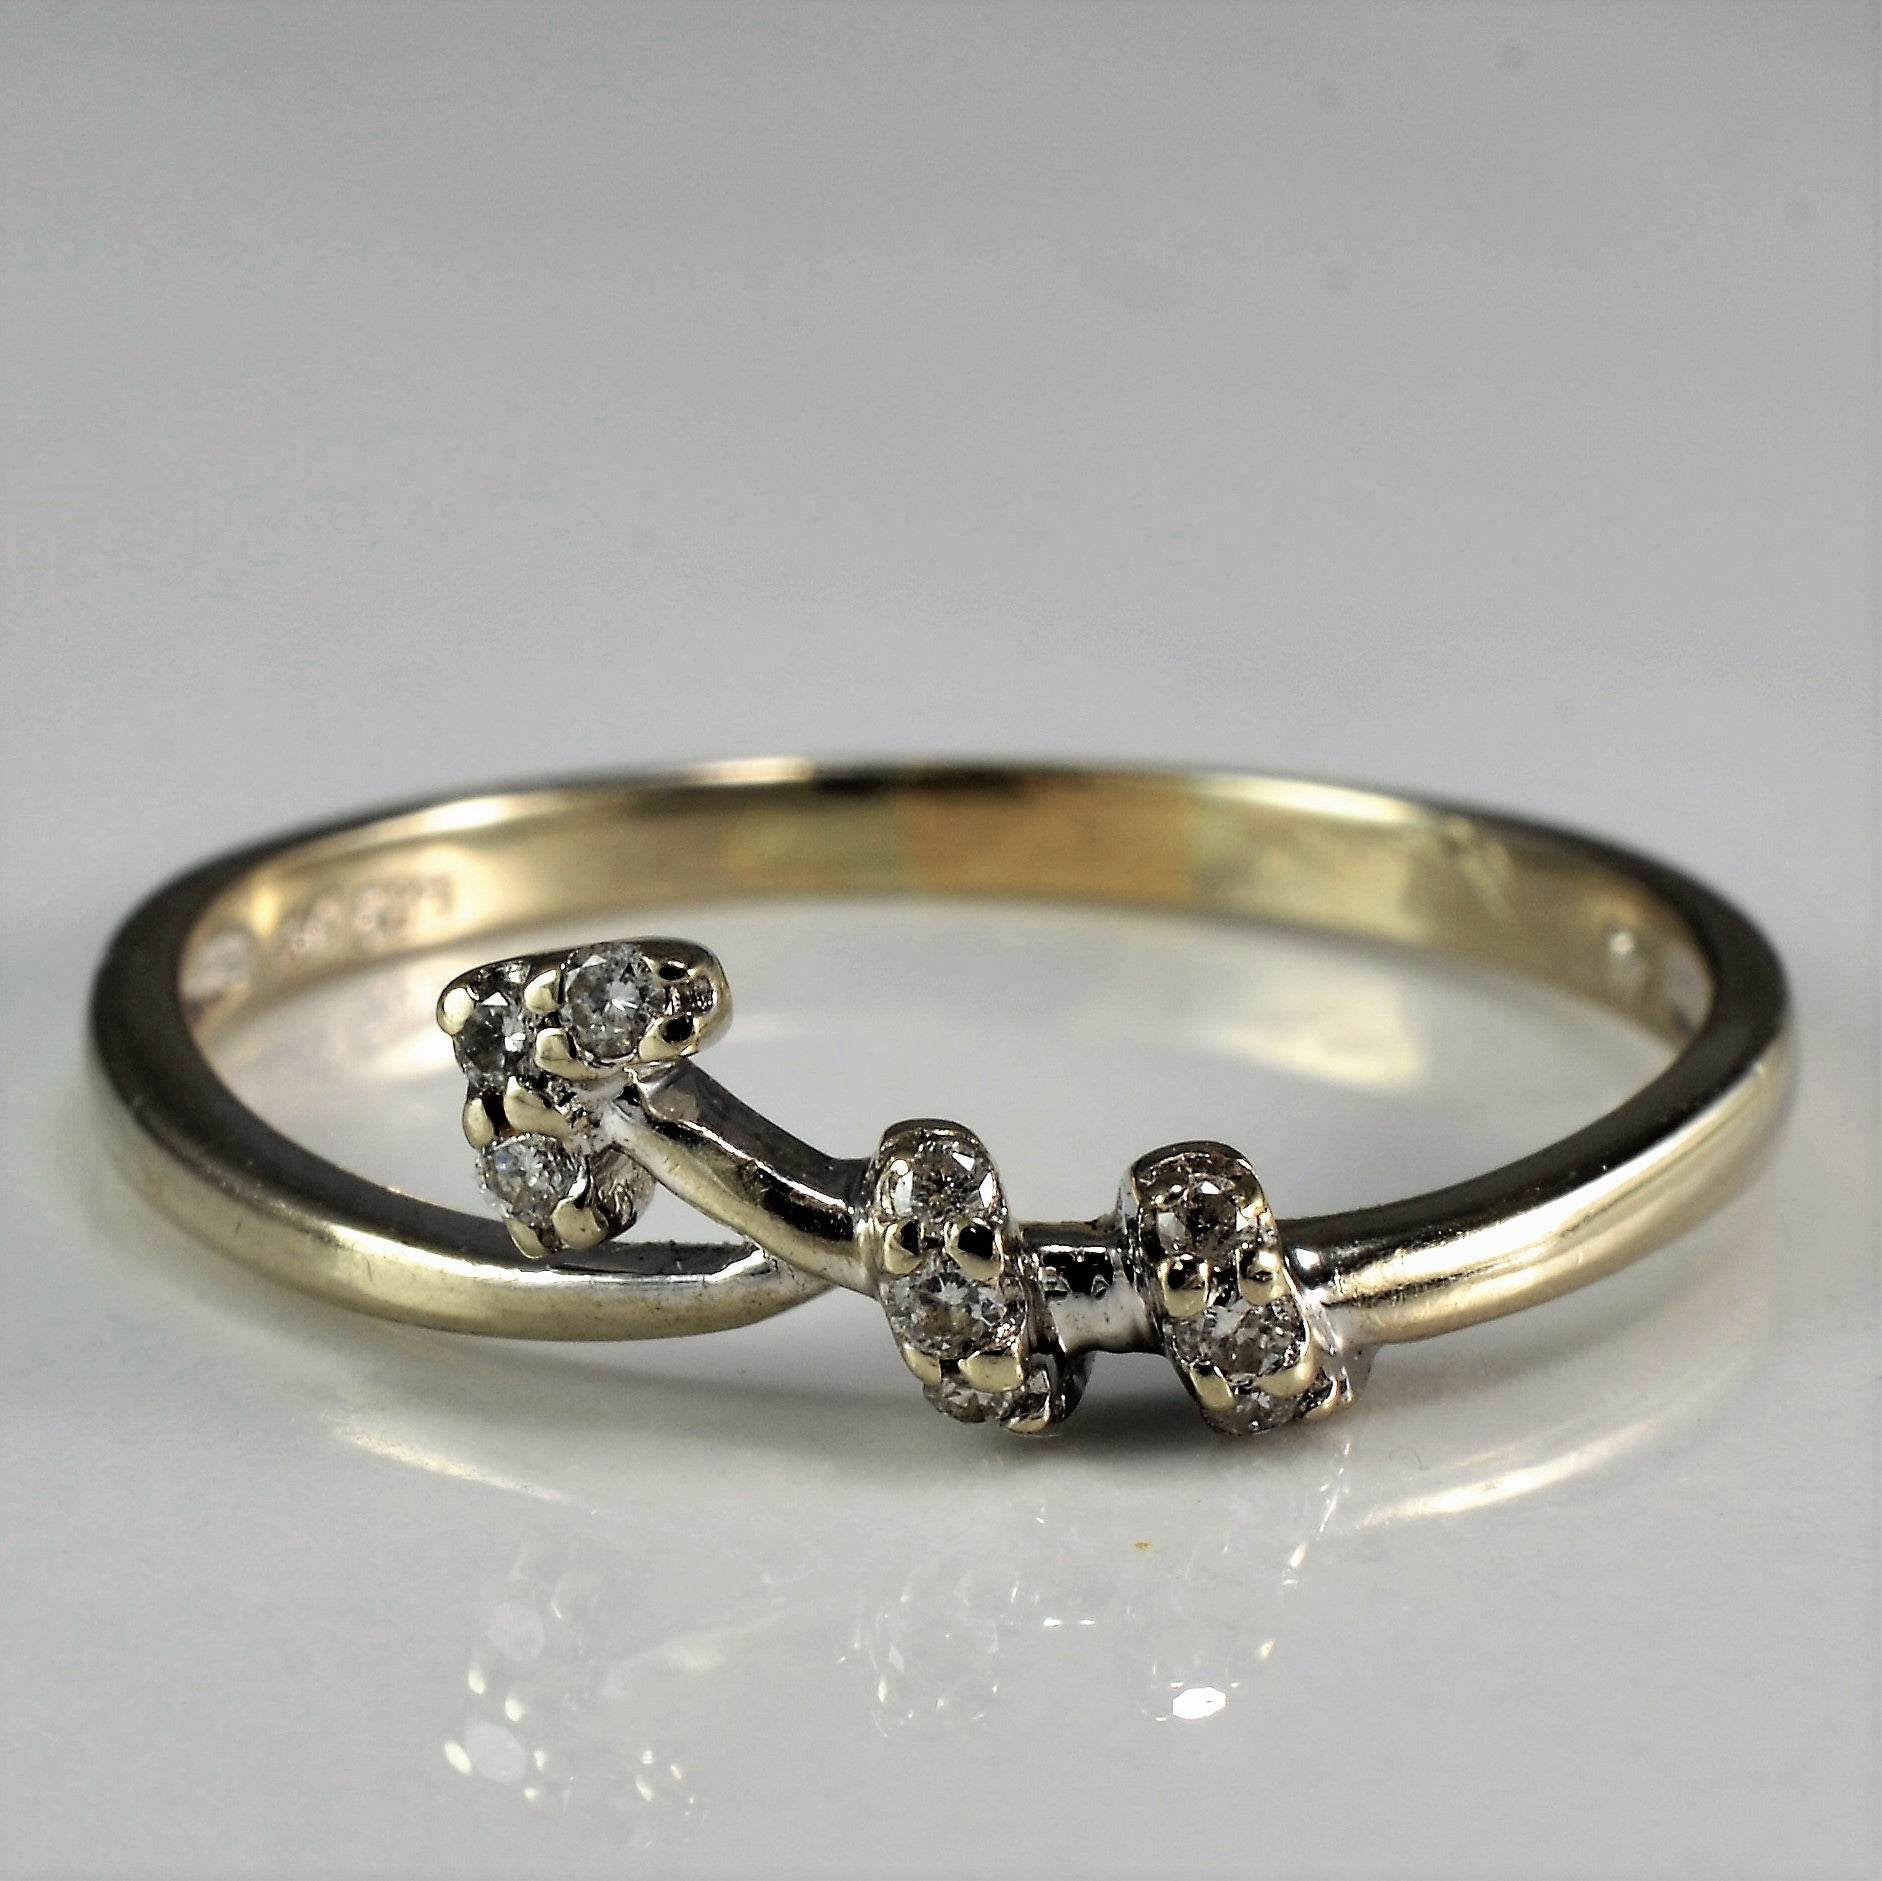 Petite Diamond Arrow Ring | 0.05 ctw, SZ 8.25 |